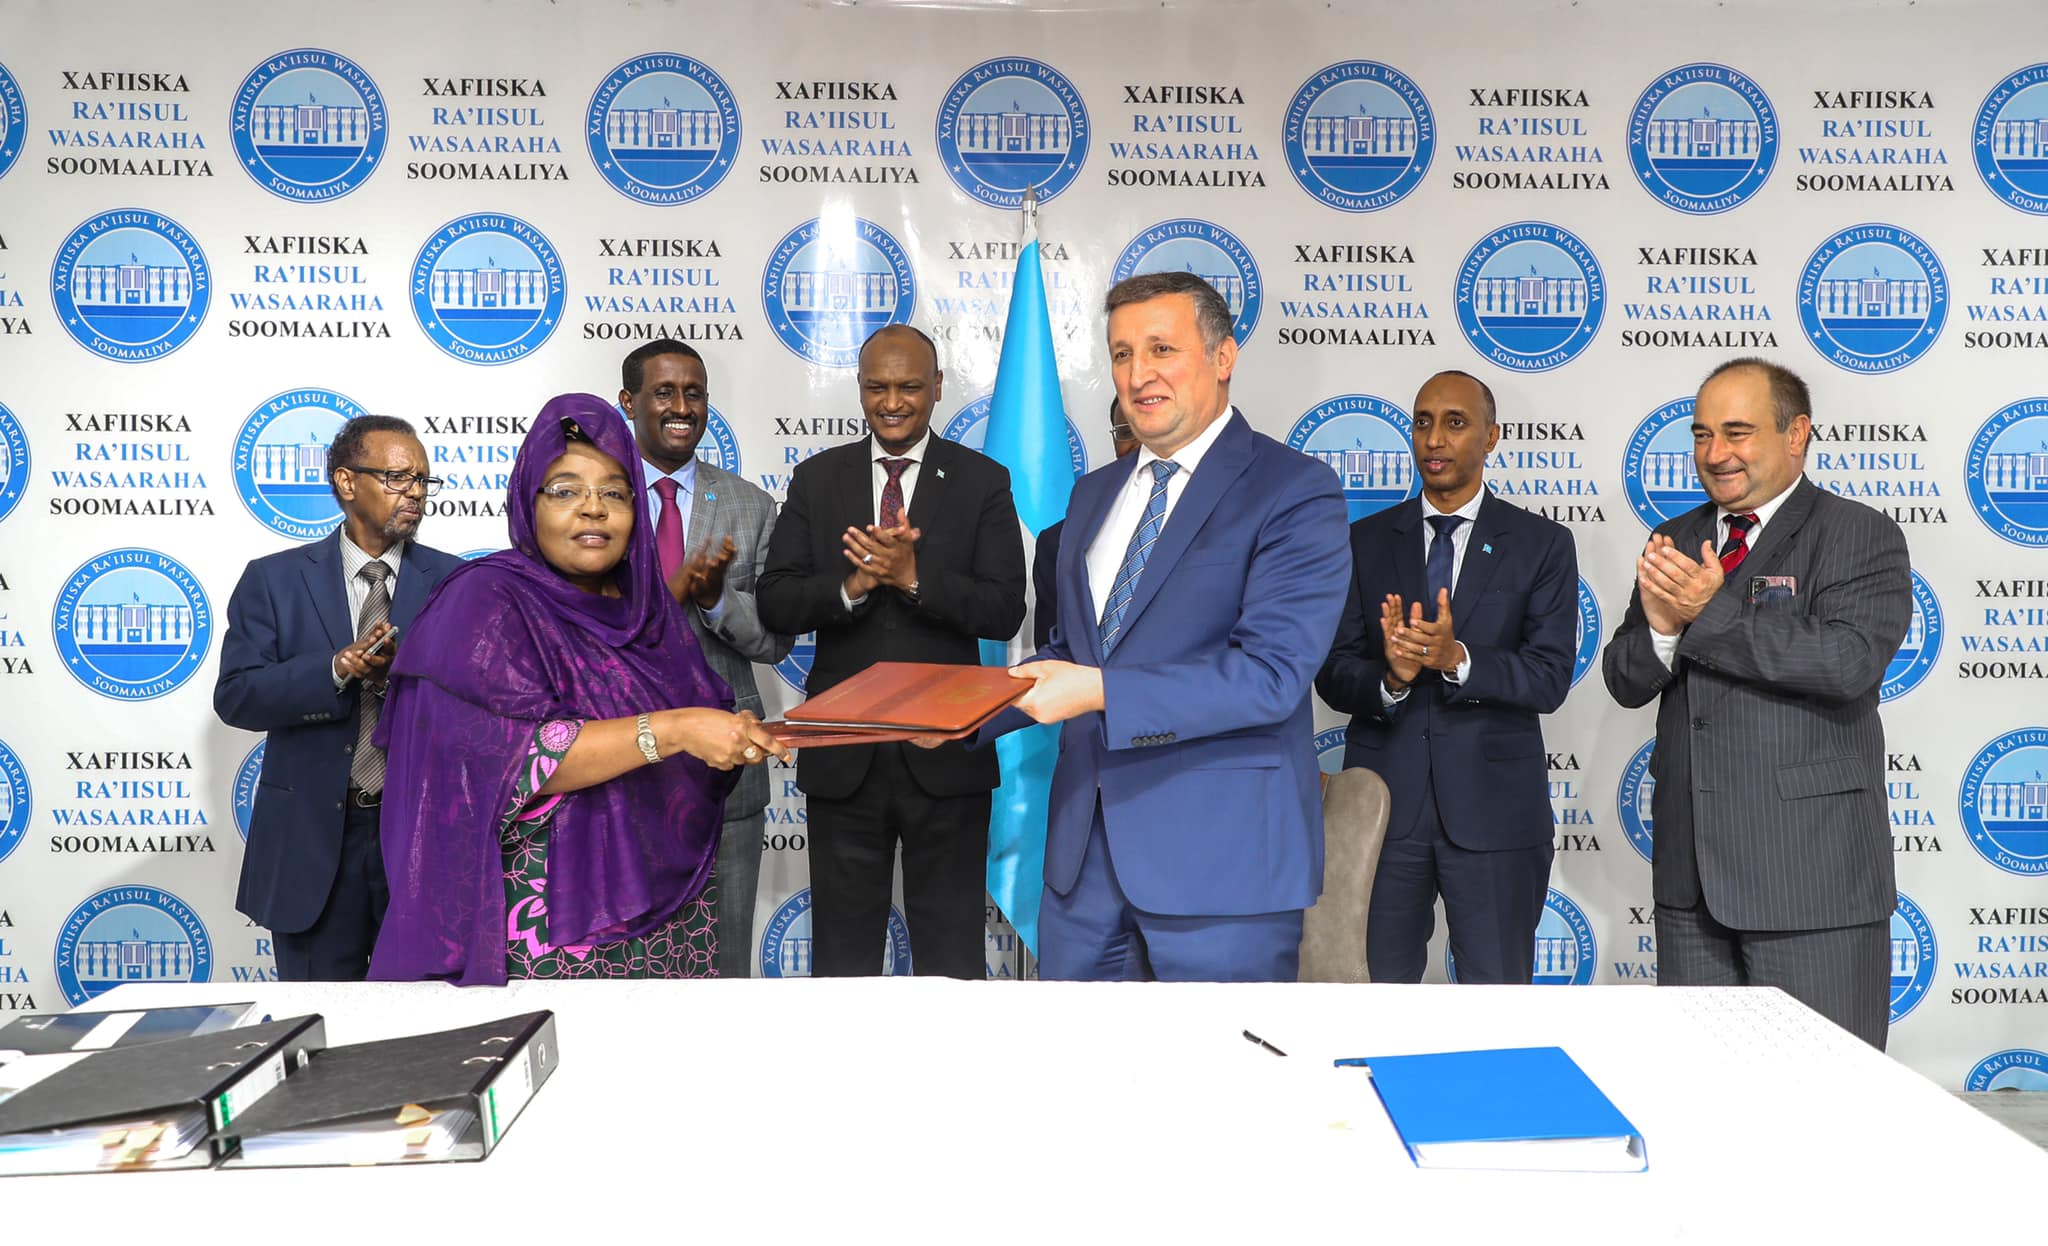 Turkey digs deeper into Somalia infrastructure projects